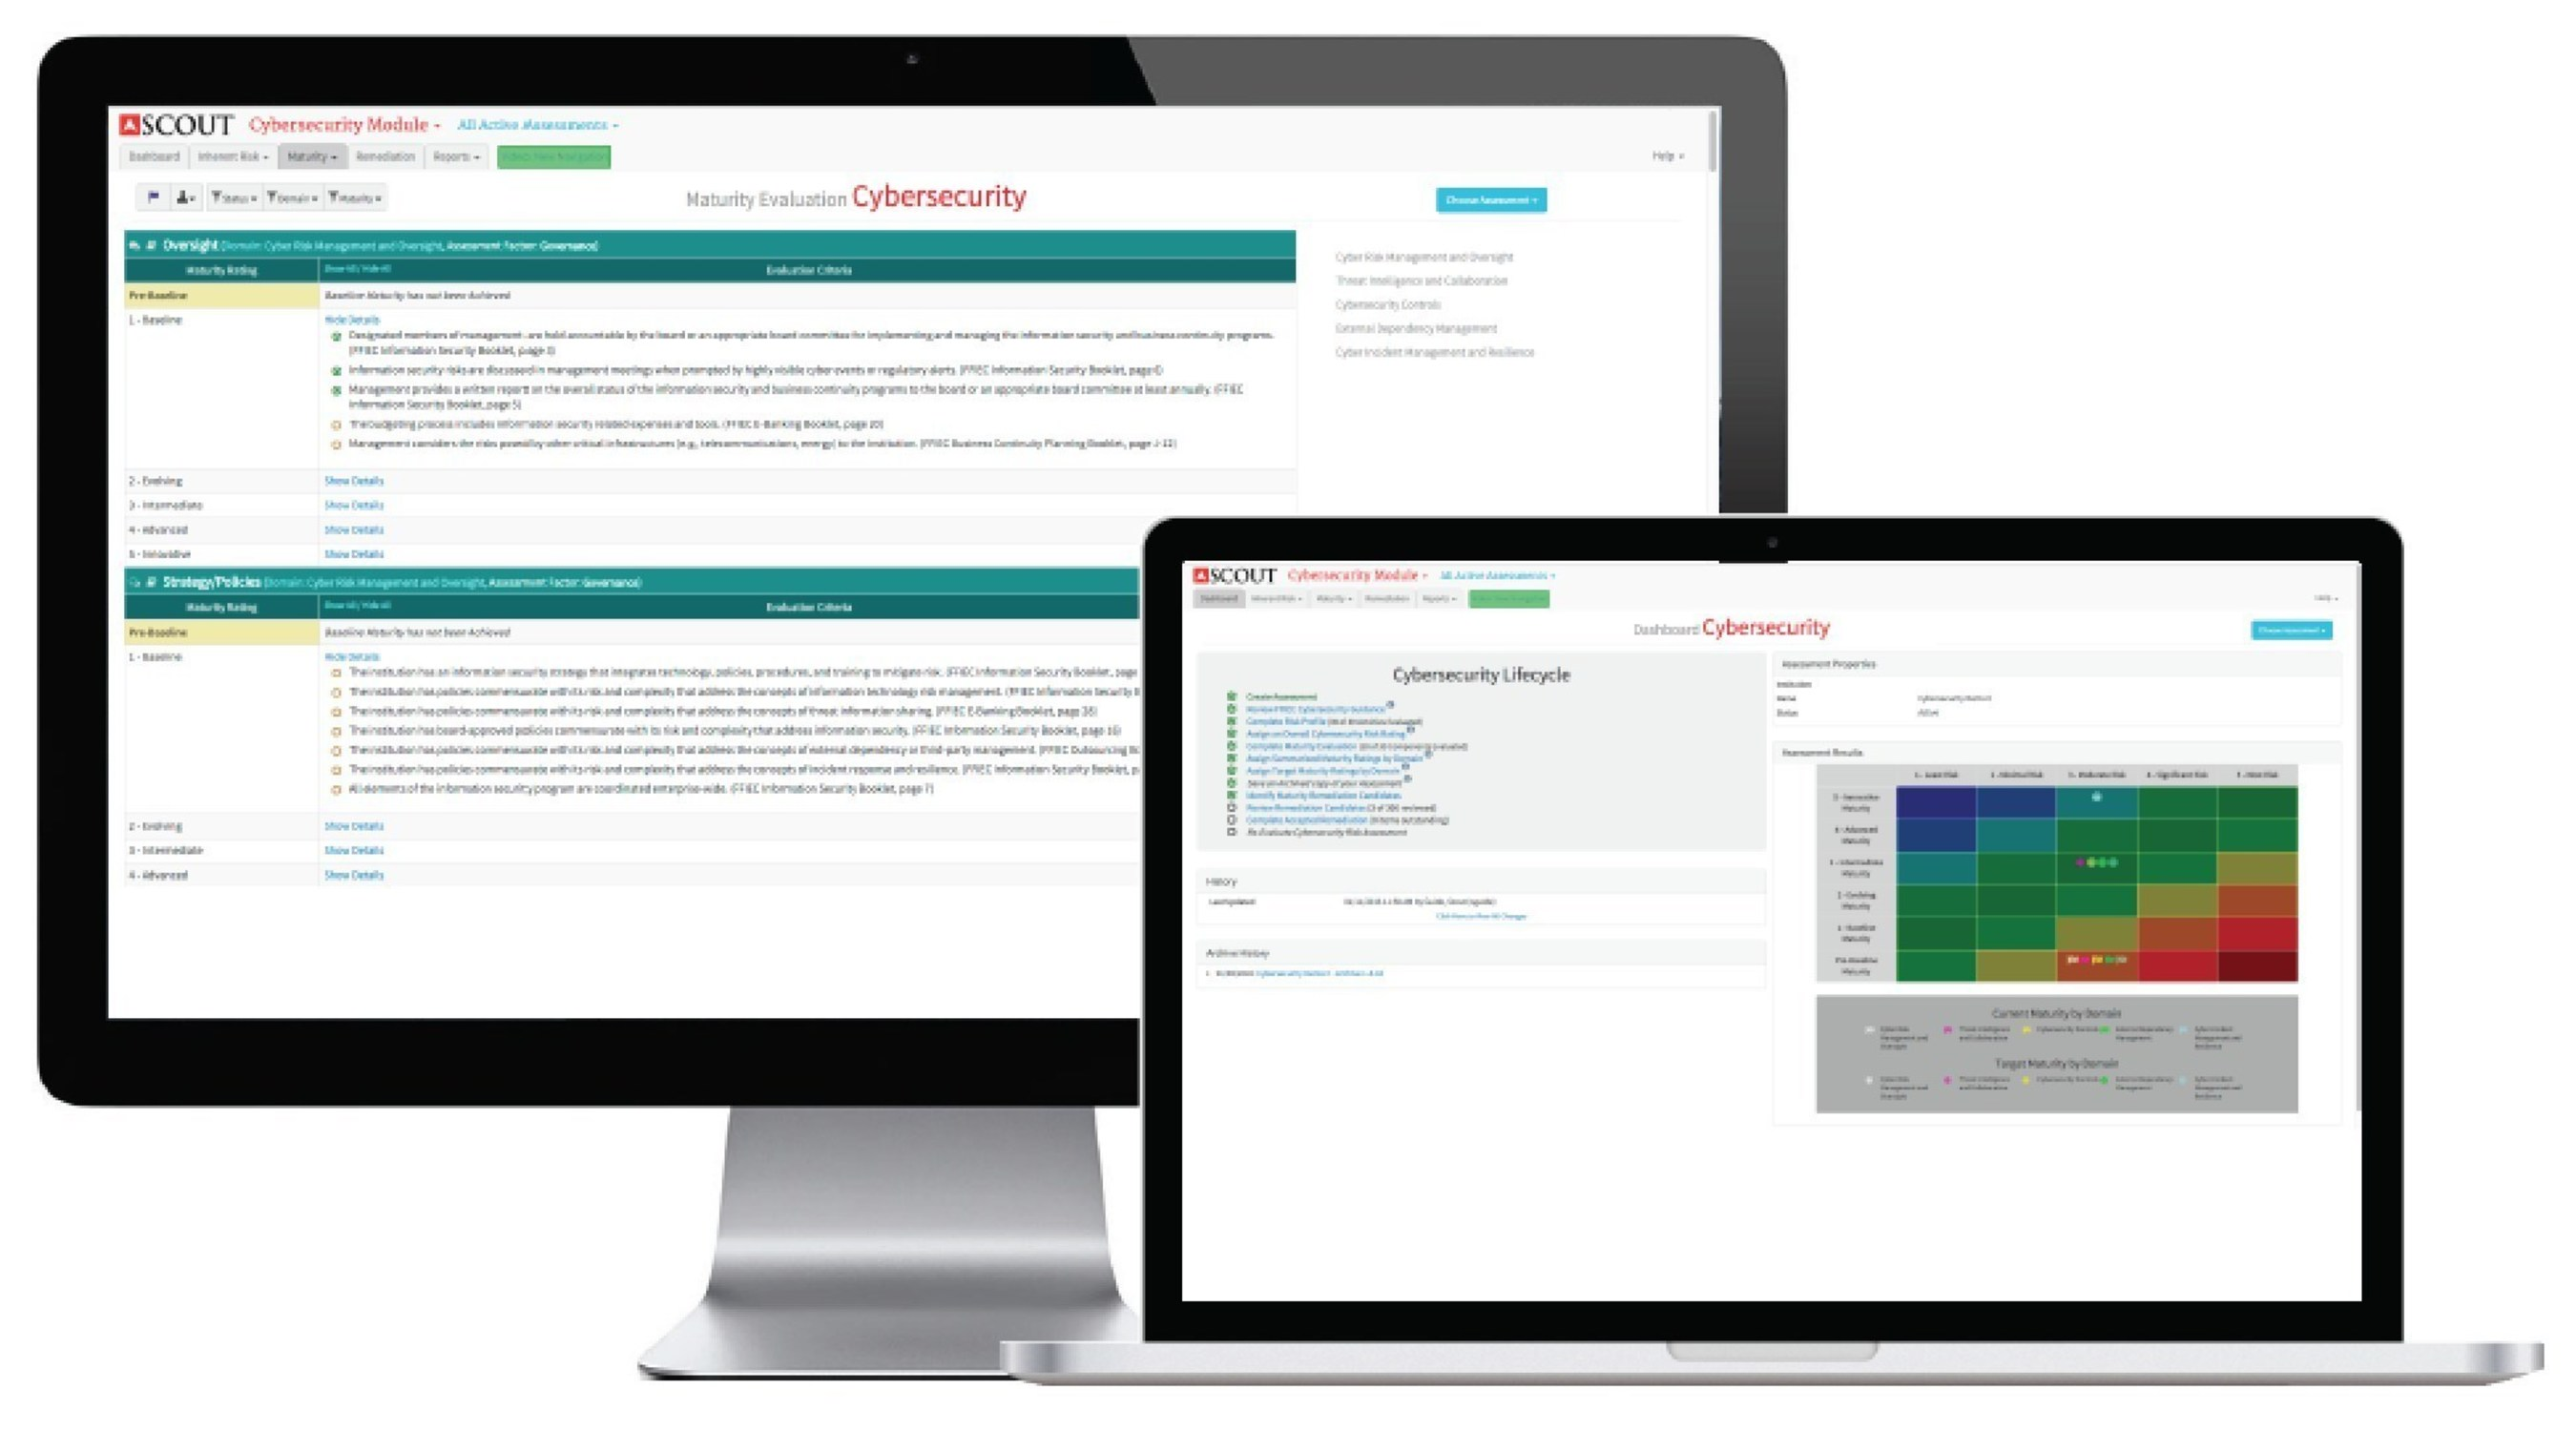 Supernal Software releases new version of its free FFIEC Cybersecurity Assessment software